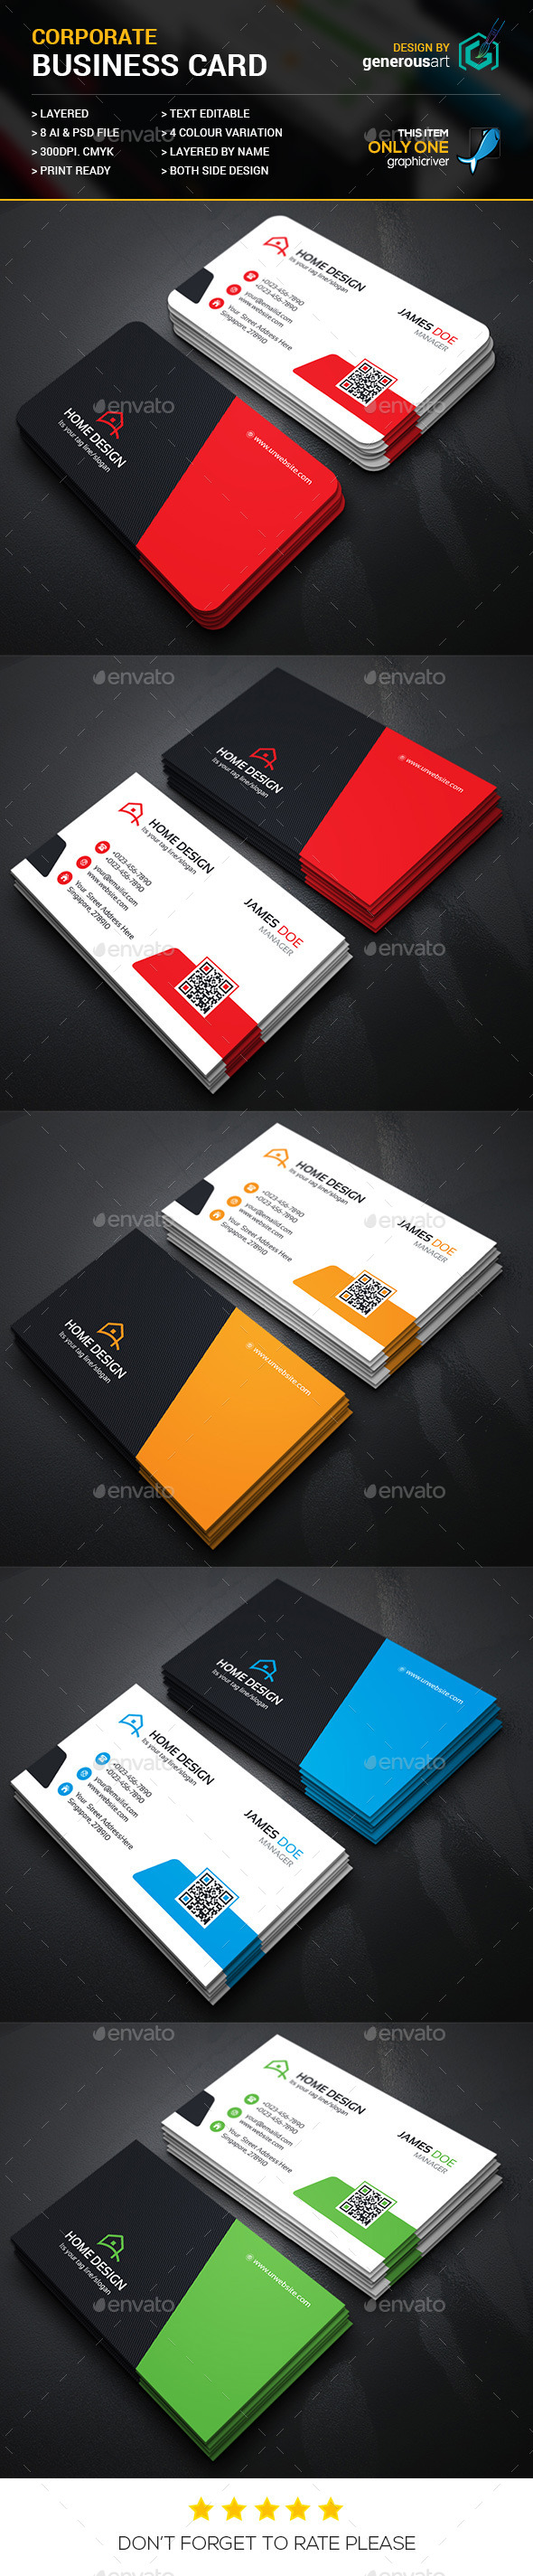 Home Design Business Card 2